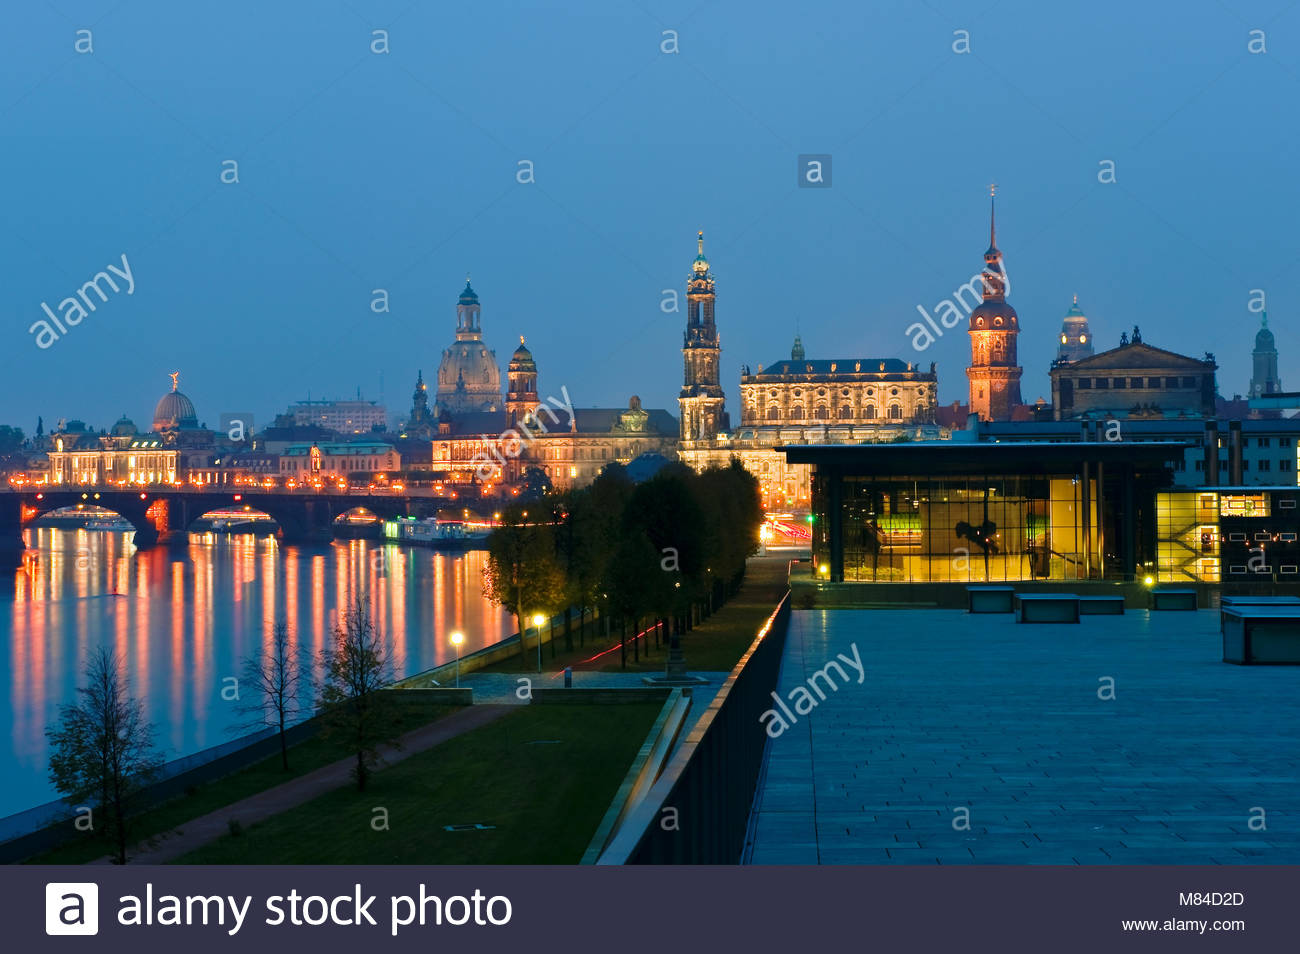 Europe, Germany, Dresden, Saxonia, Saxony. old town-silhouette with Bruehlsche terrace, cathedral, castle, Secundogenitur, - Stock Image